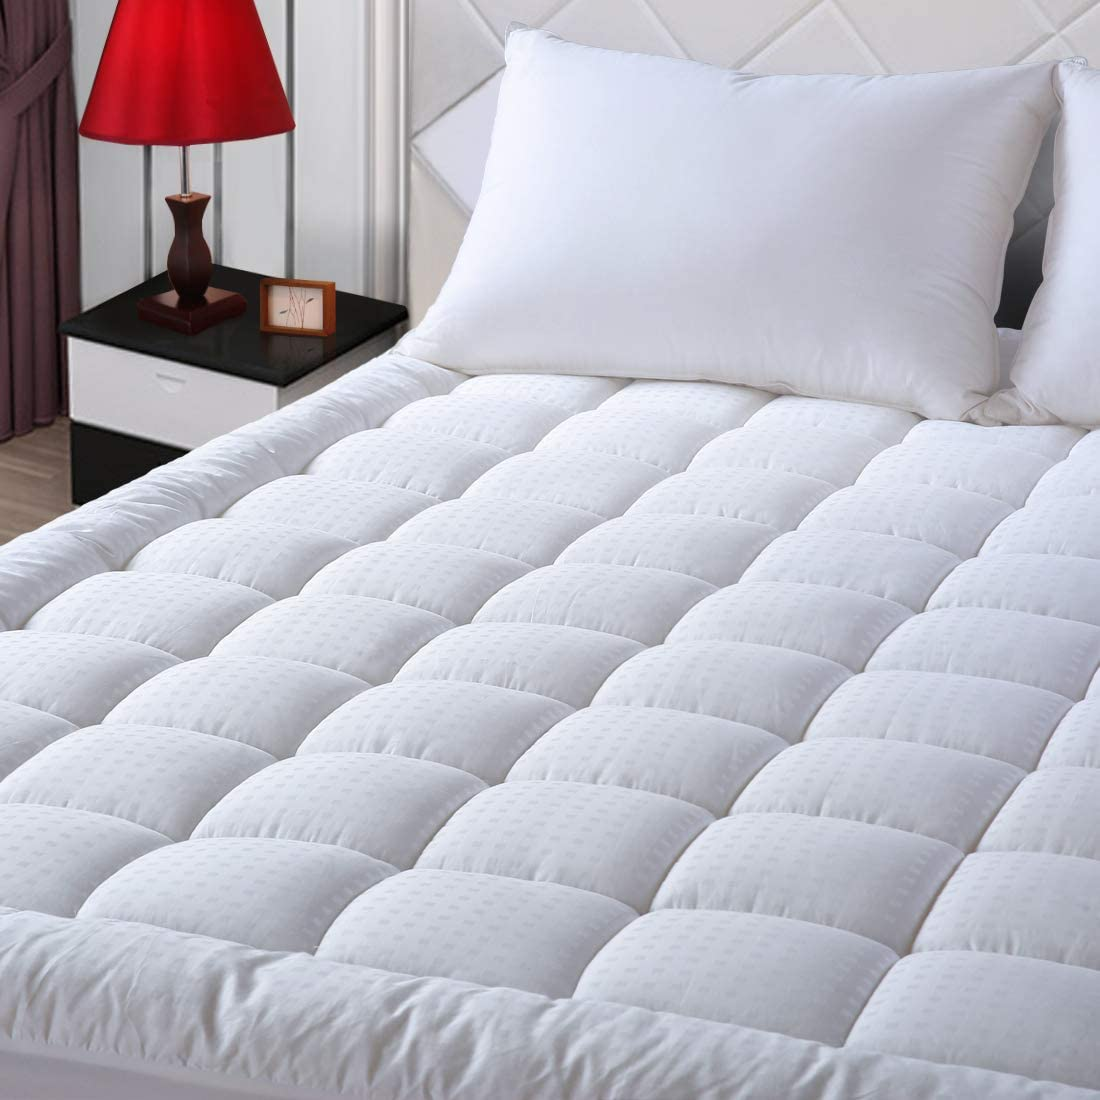 EASELAND Pillow Top Mattress Pad